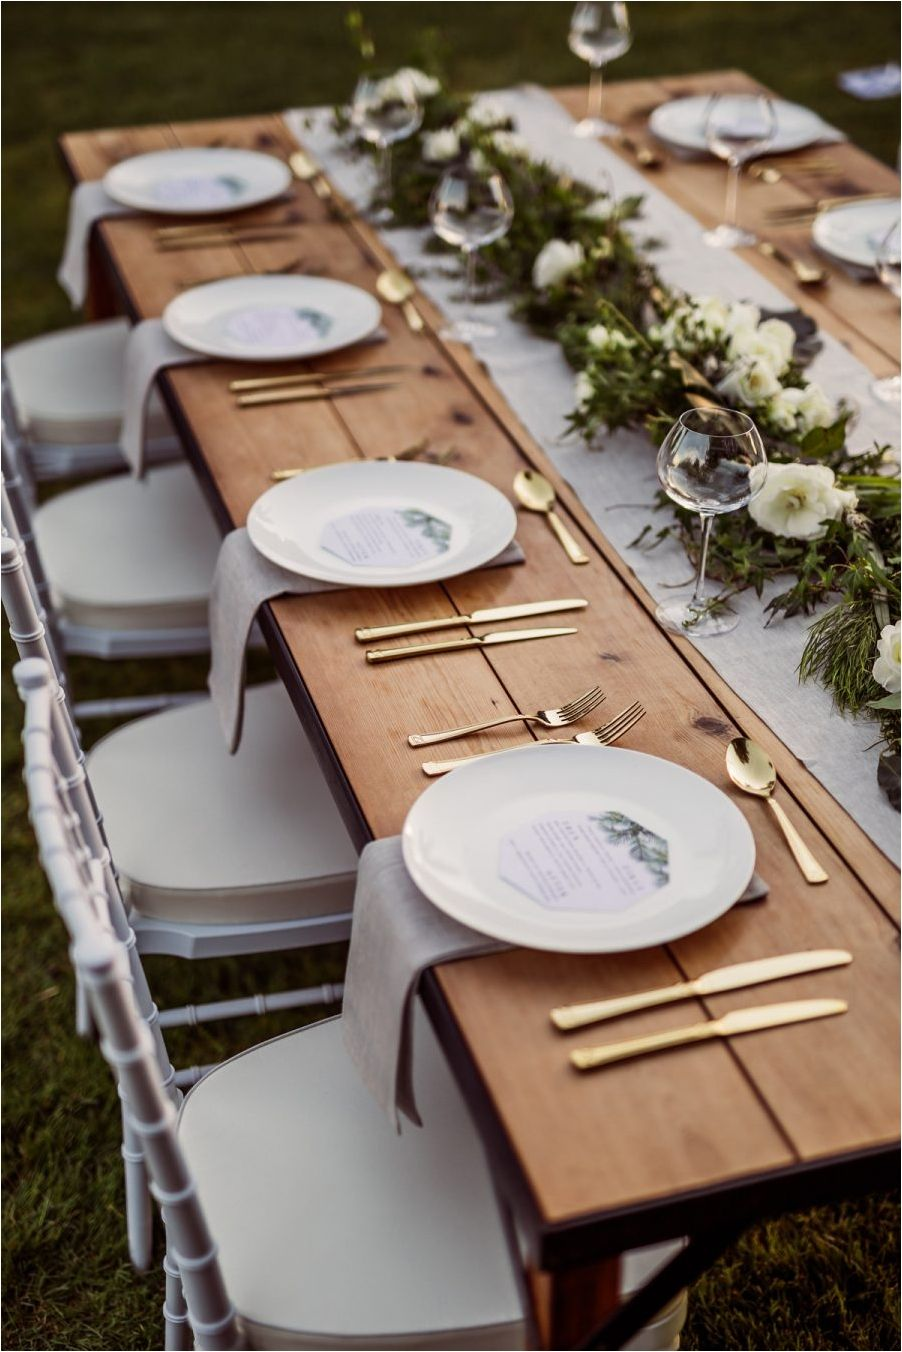 70+ Elegant Wedding Table Settings Ideas 2017 & 70+ Elegant Wedding Table Settings Ideas 2017 | Wedding table ...